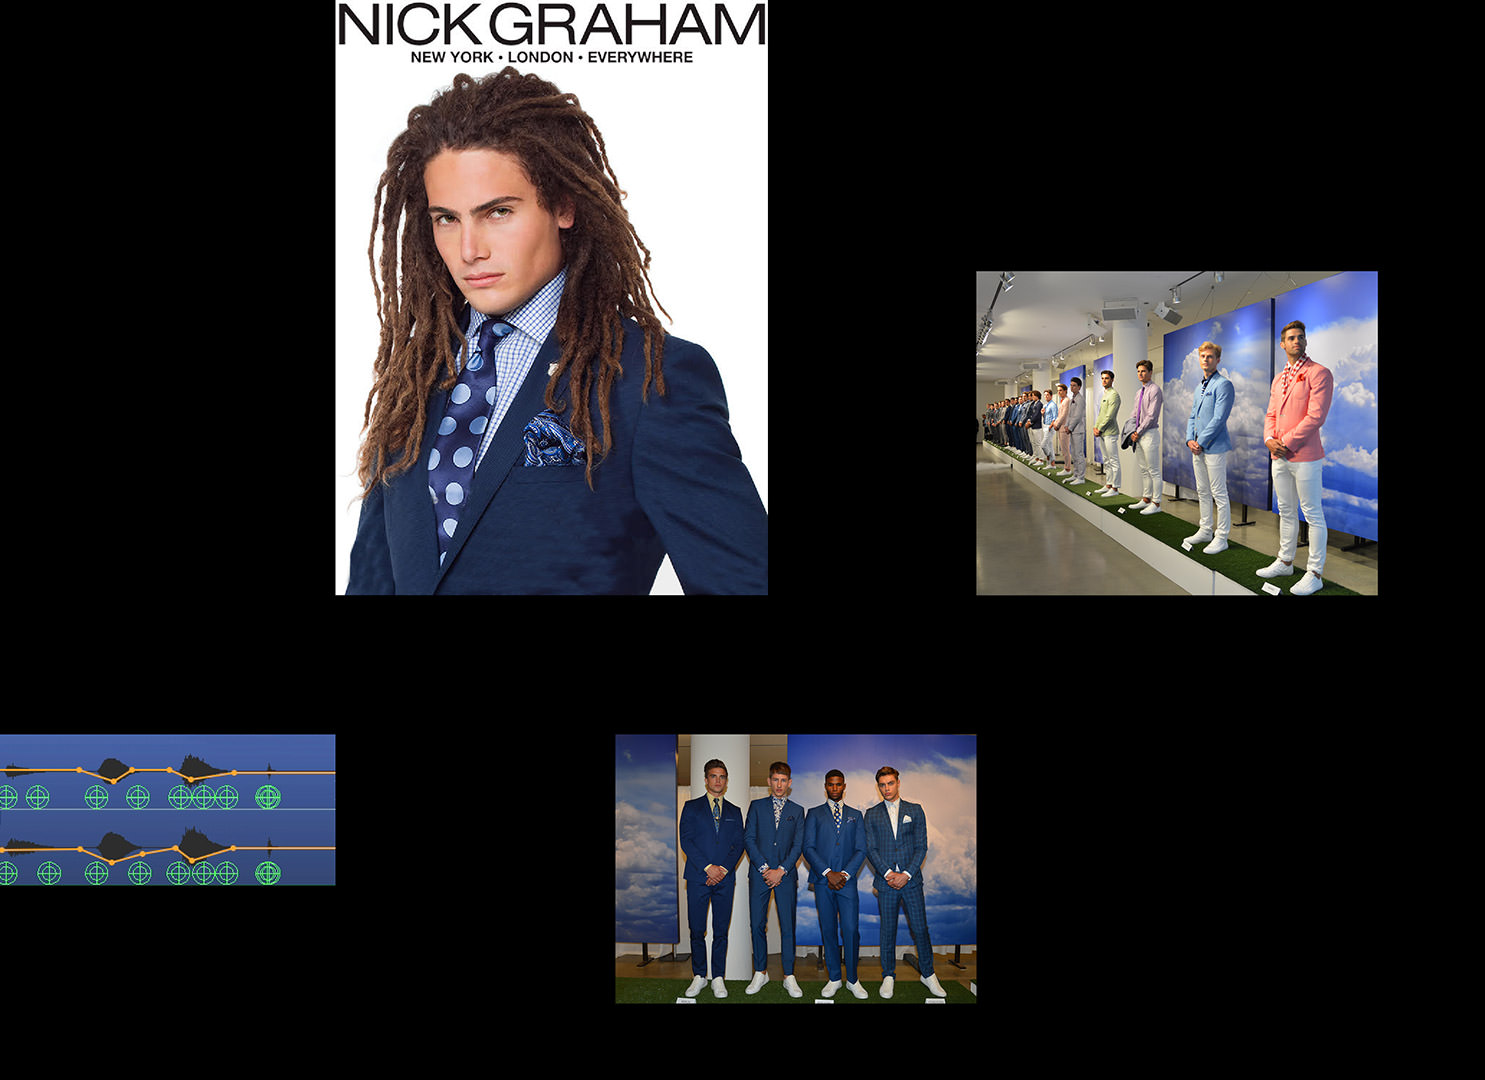 Spatial audio for the Nick Graham menswear launch